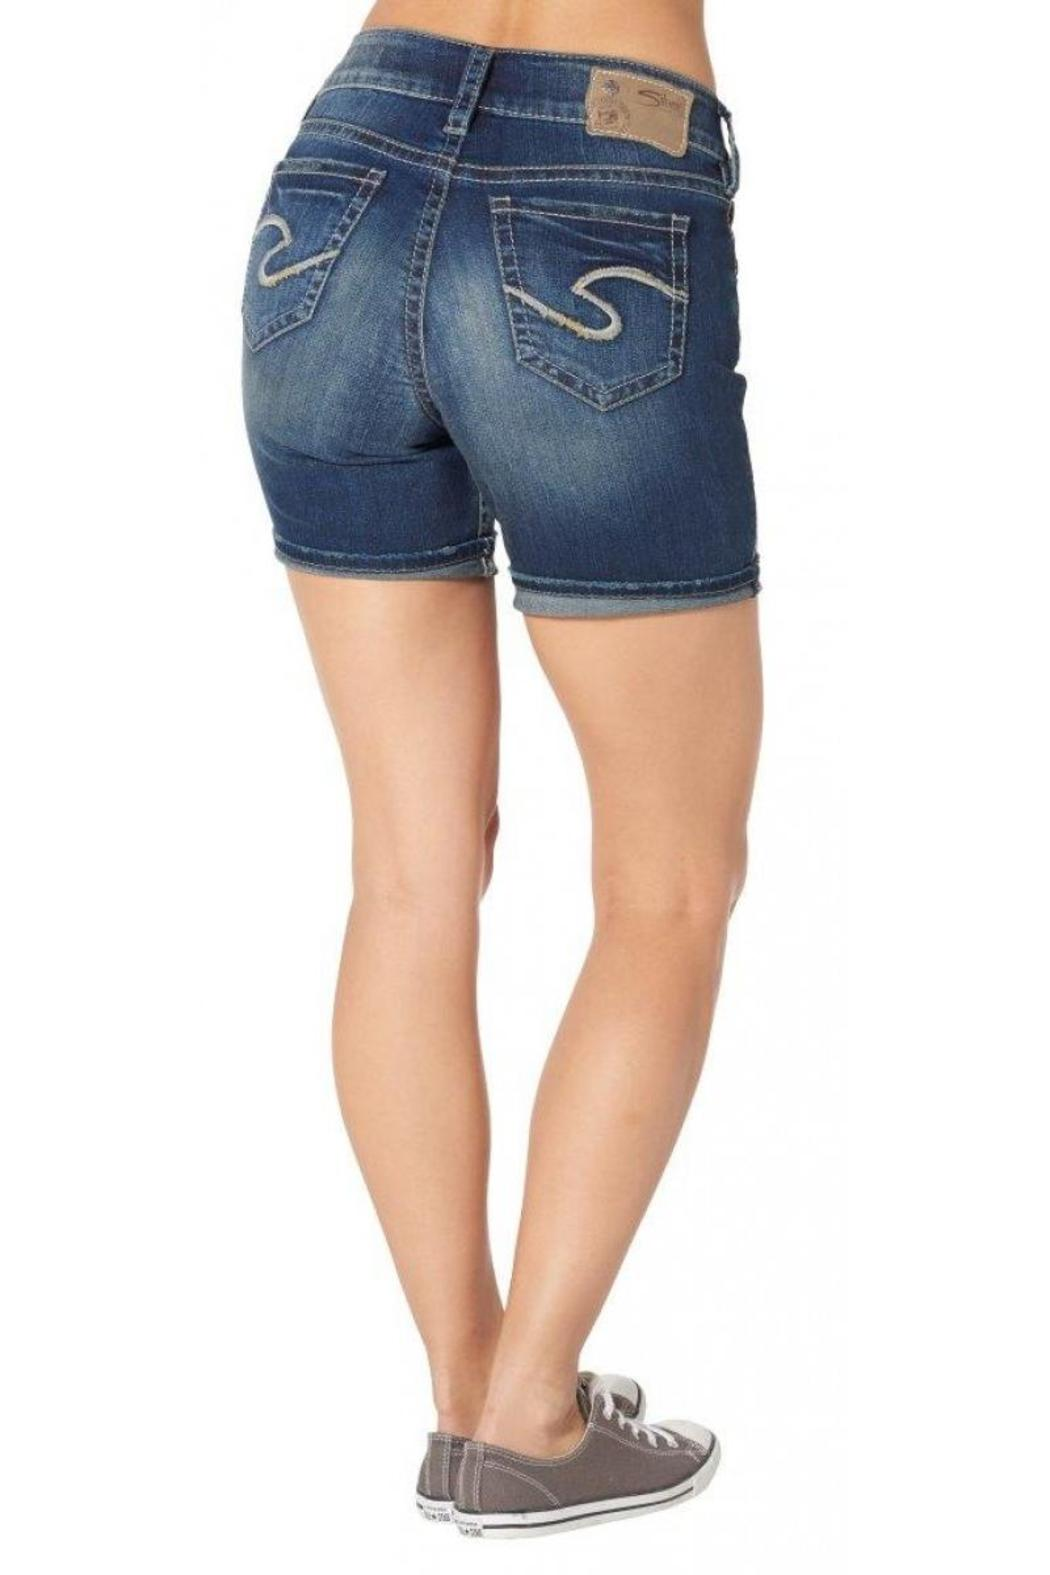 0539e7d6cd Silver Jeans Co. Suki Mid-Thigh Shorts from North Shore by Assets ...